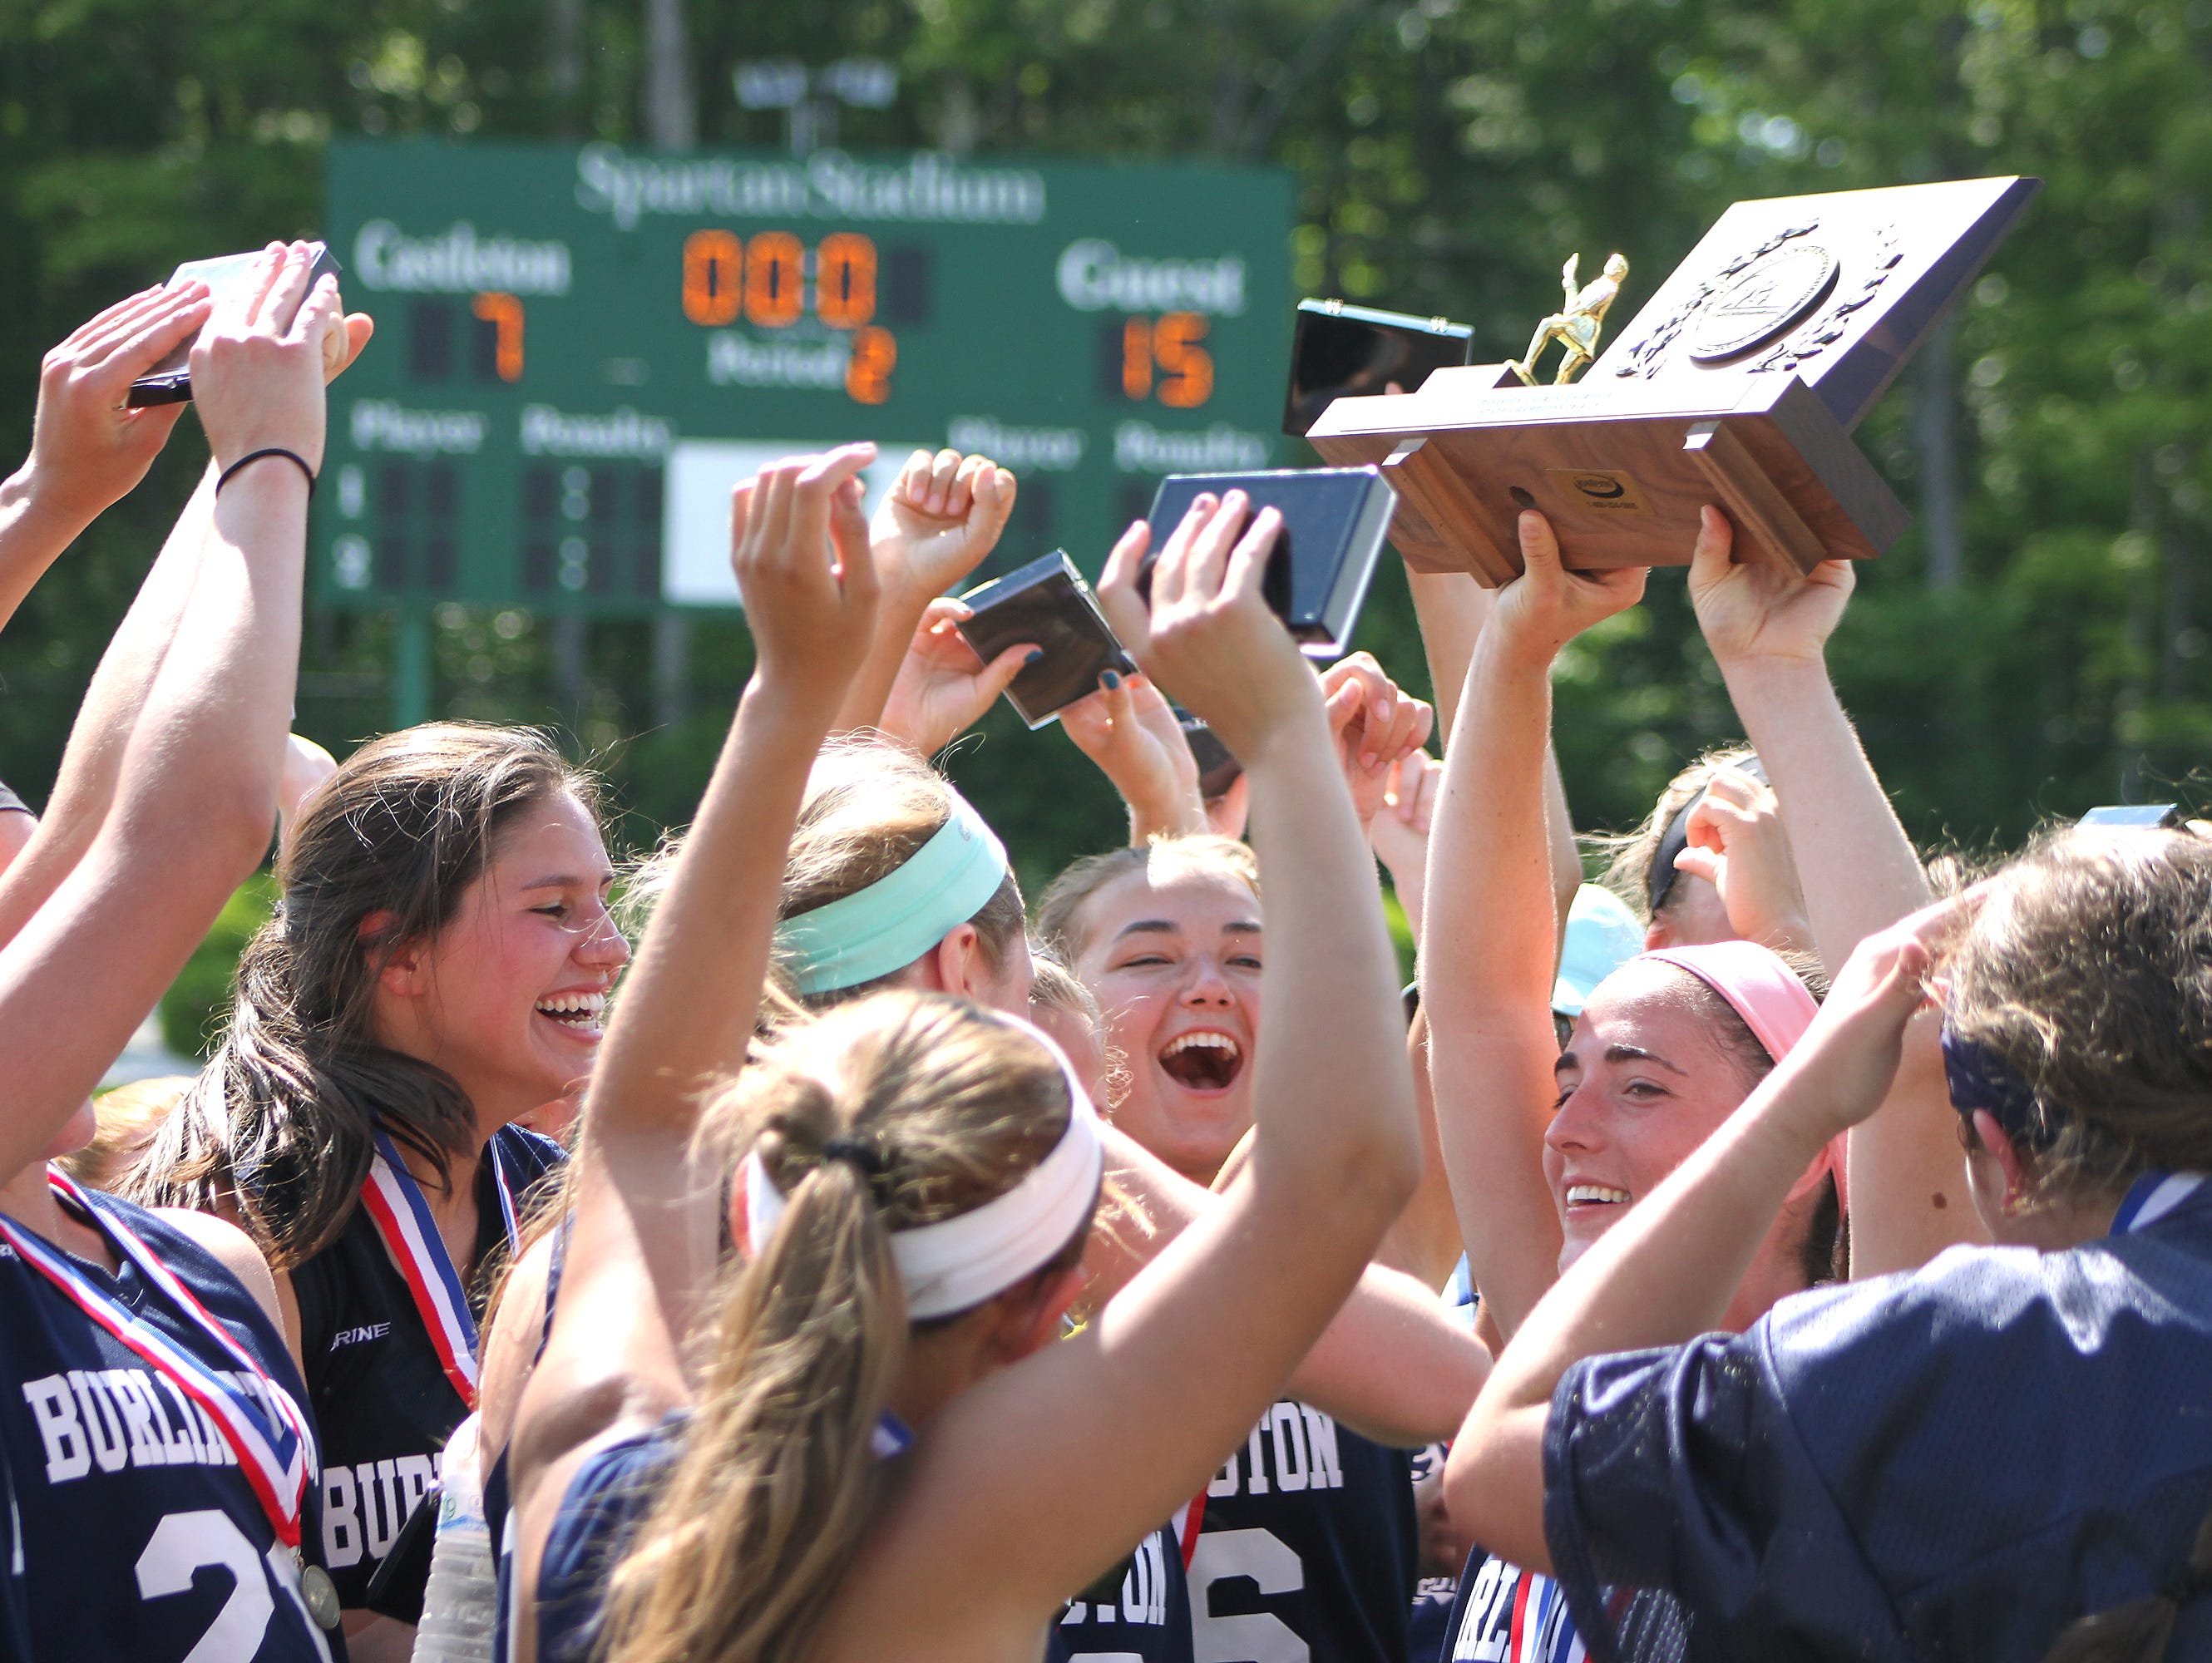 The Burlington High School girls lacrosse team celebrates its first state championship after beating Burr and Burton 15-7 in the Division I final on Saturday at Castleton State College.